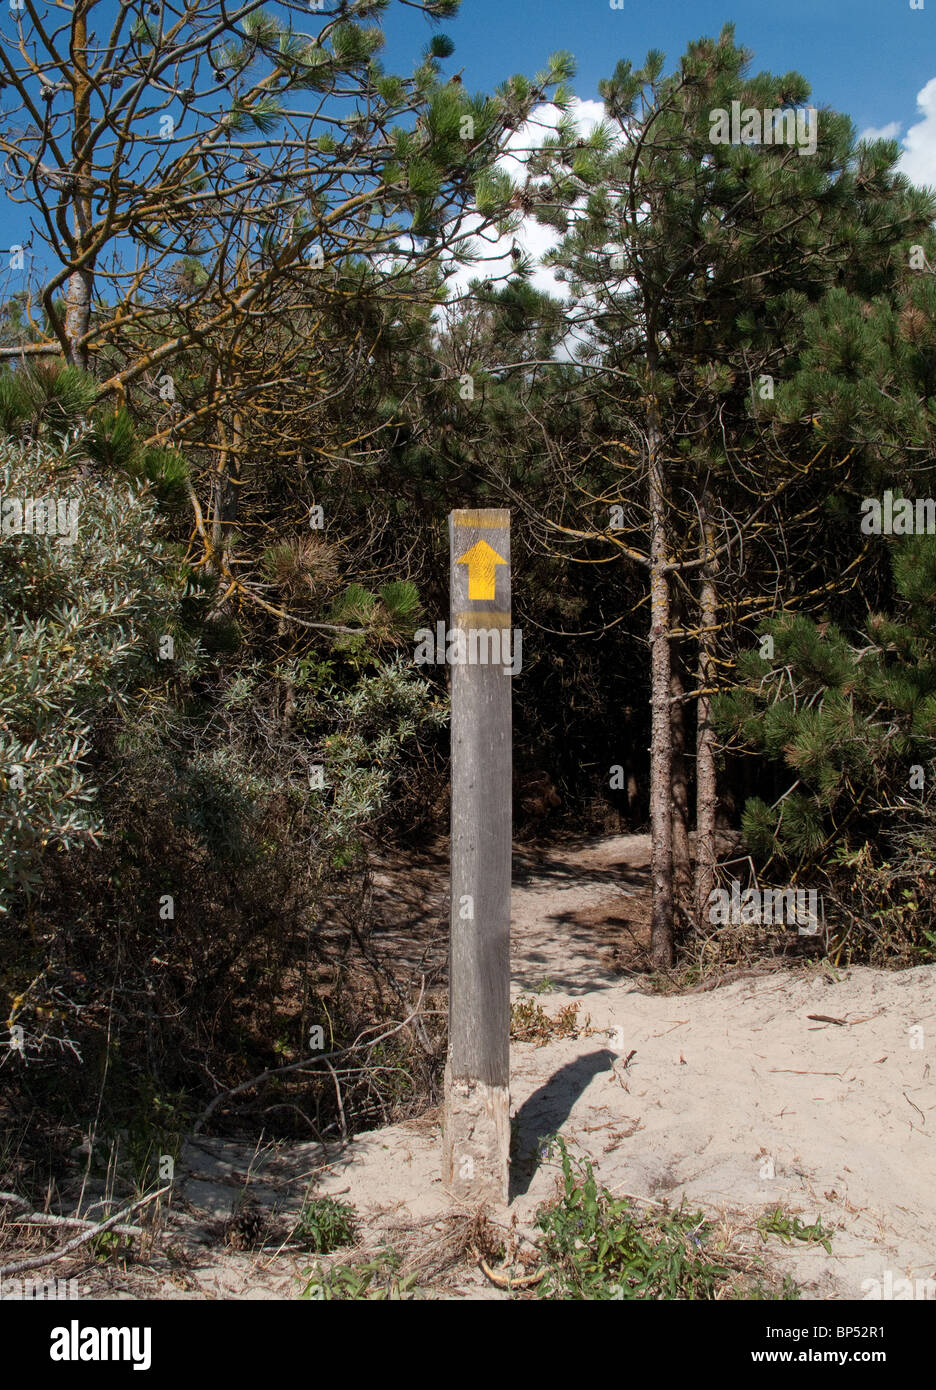 Wooden signpost showing direction into forest at Le Touquet - Stock Image